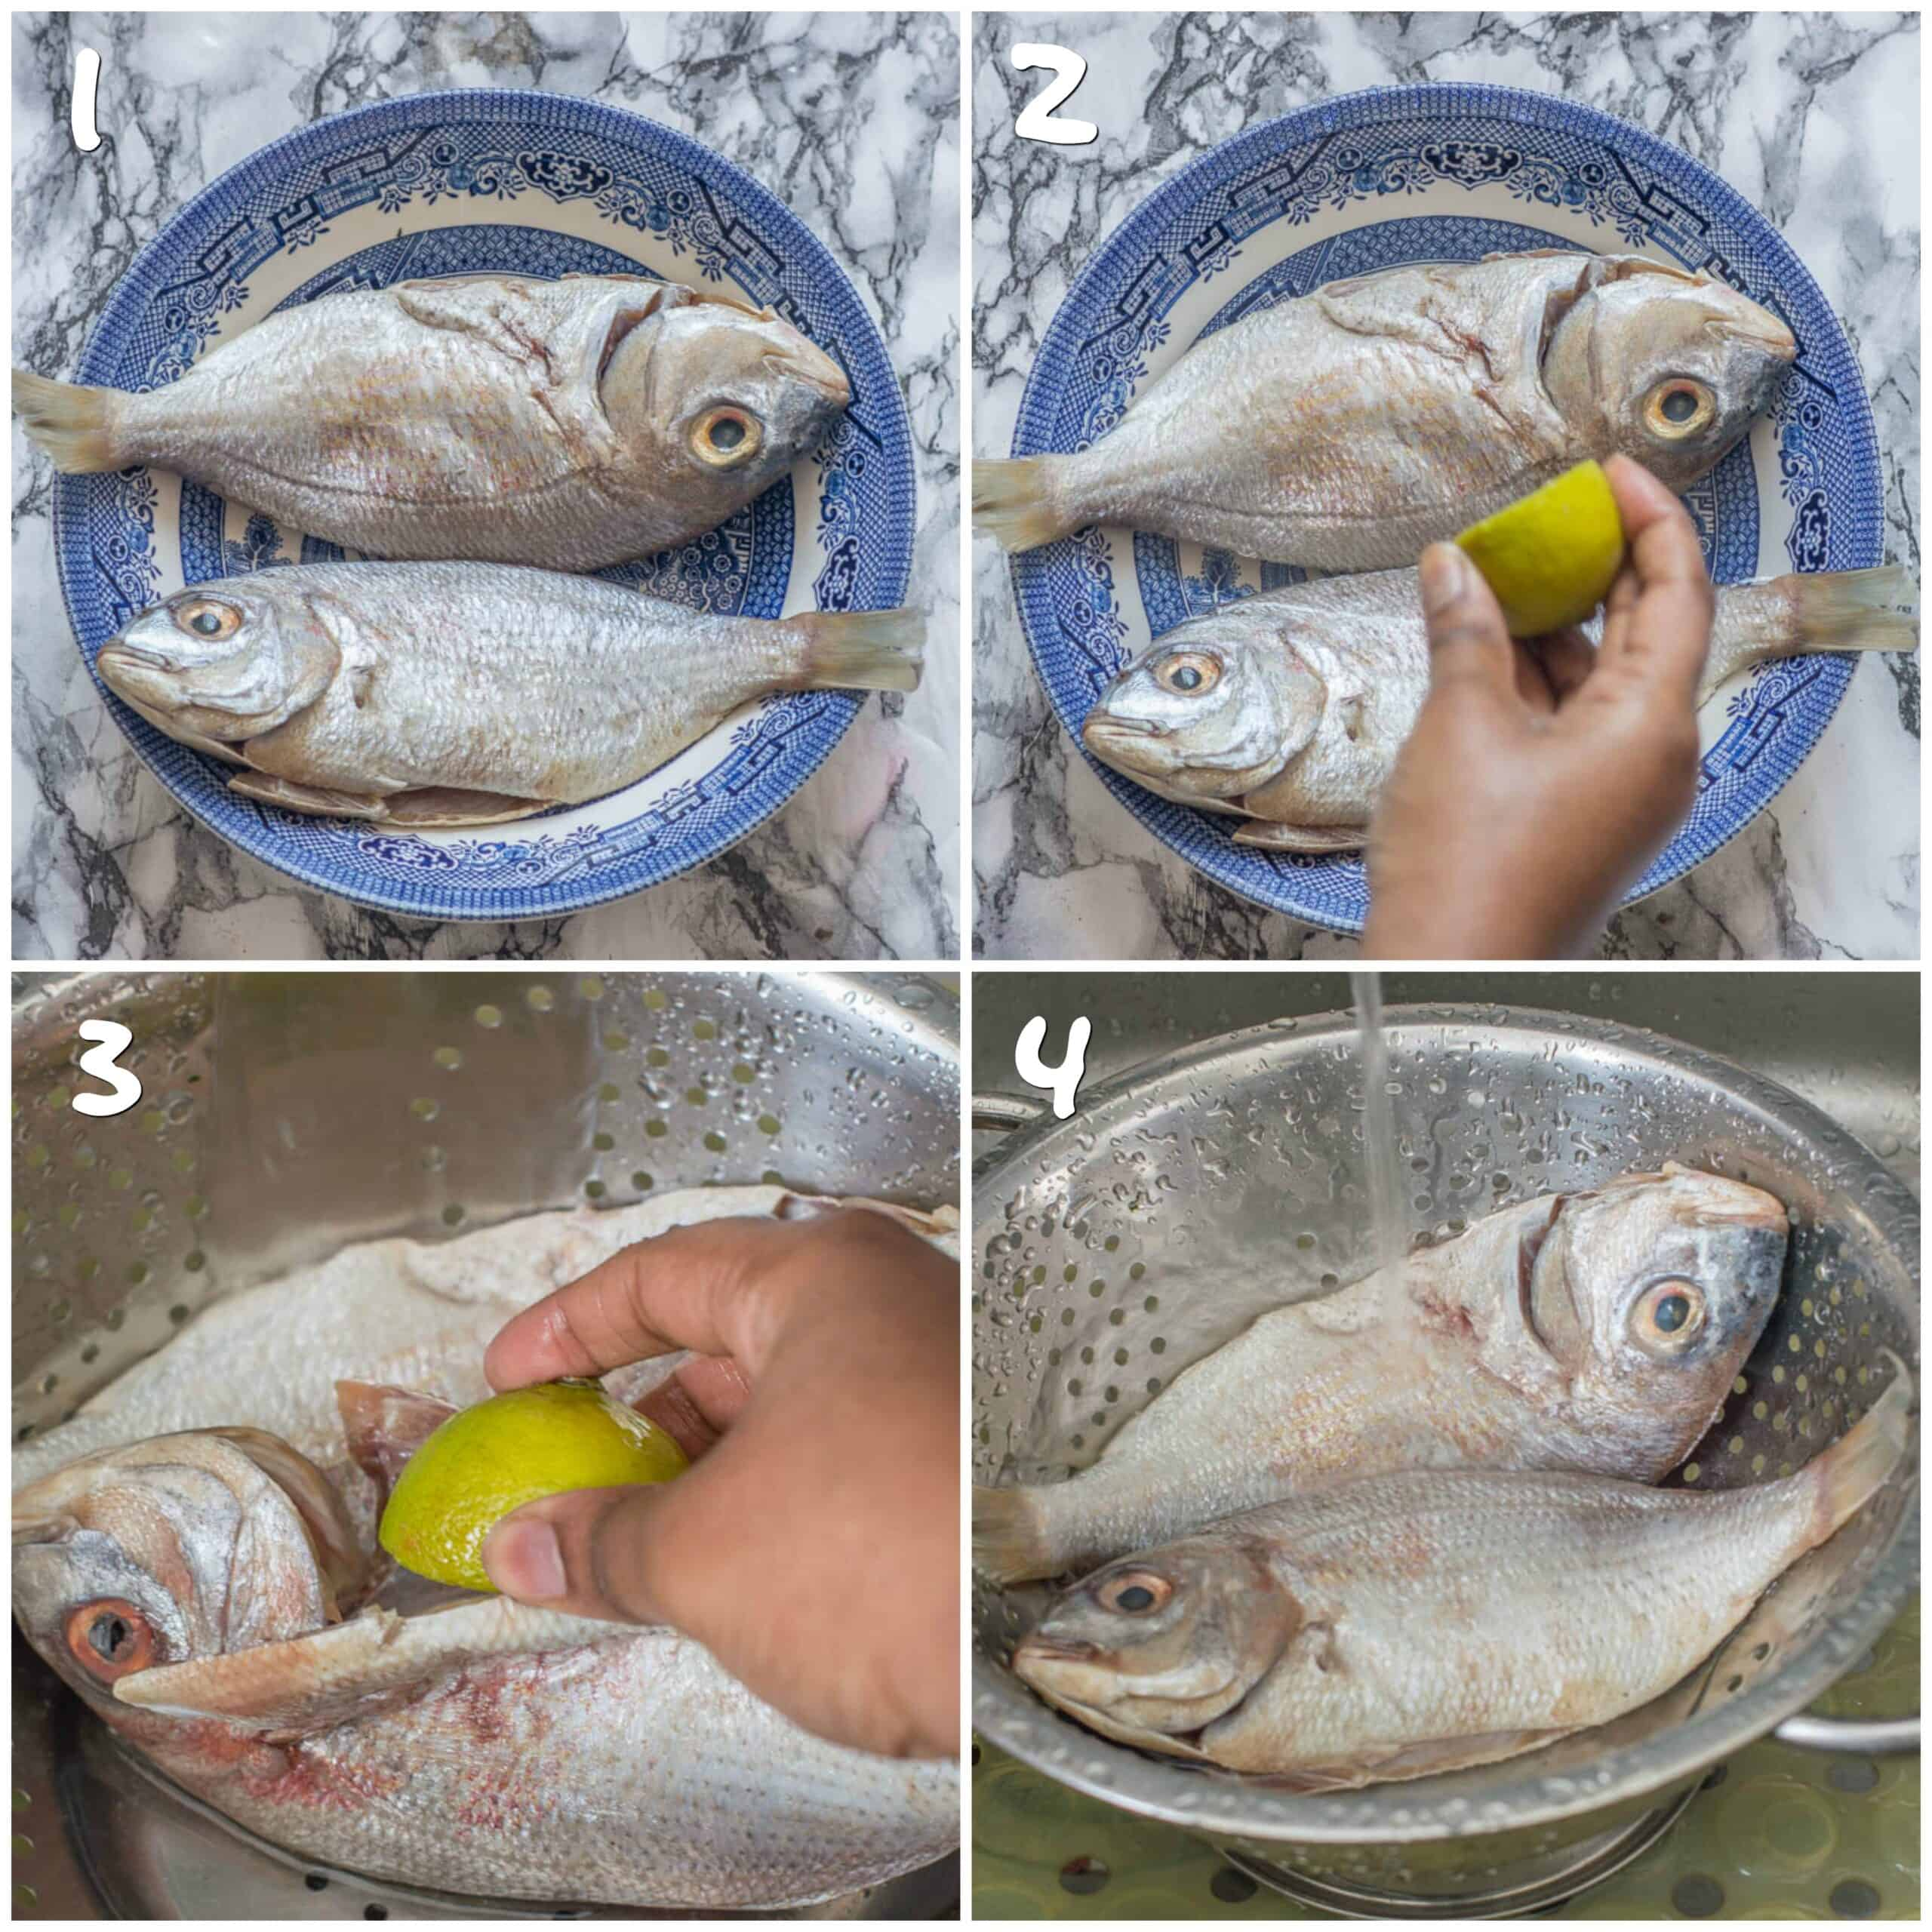 steps 1-4 cleaning the fish